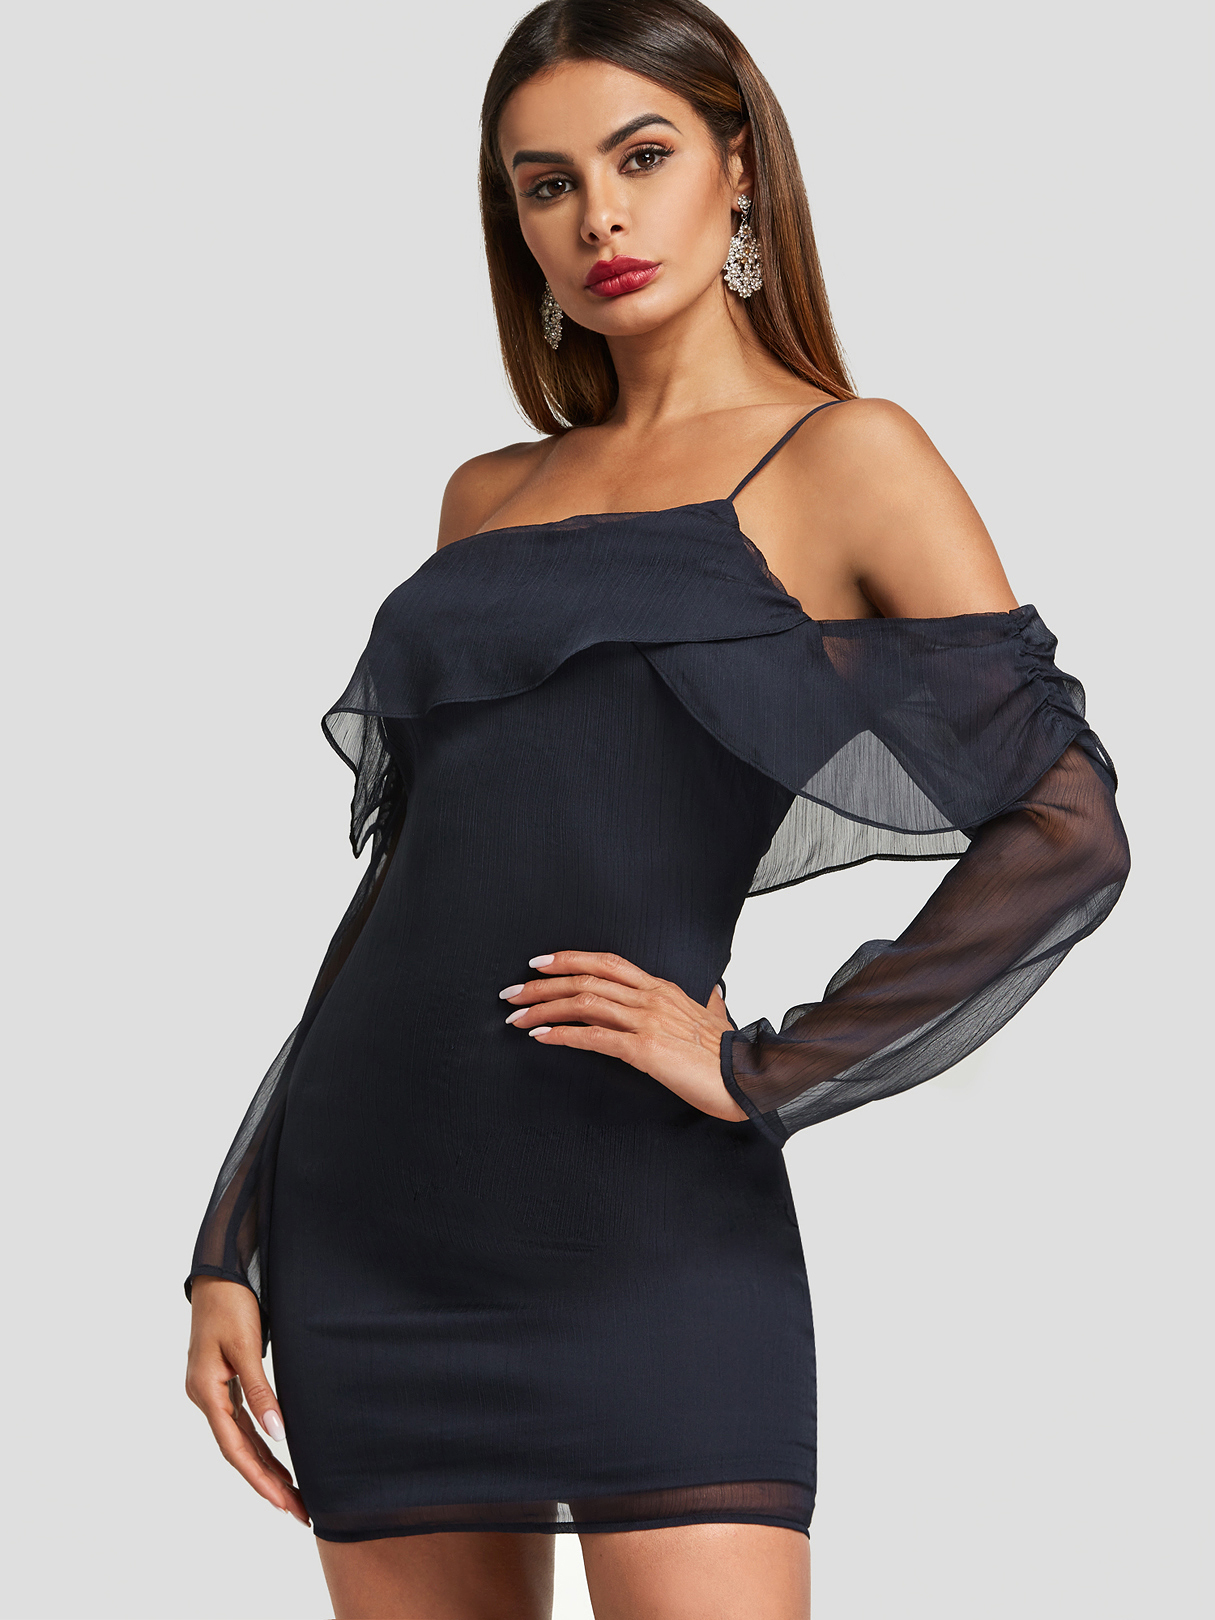 Navy Backless Design Off The Shoulder Mesh Dress